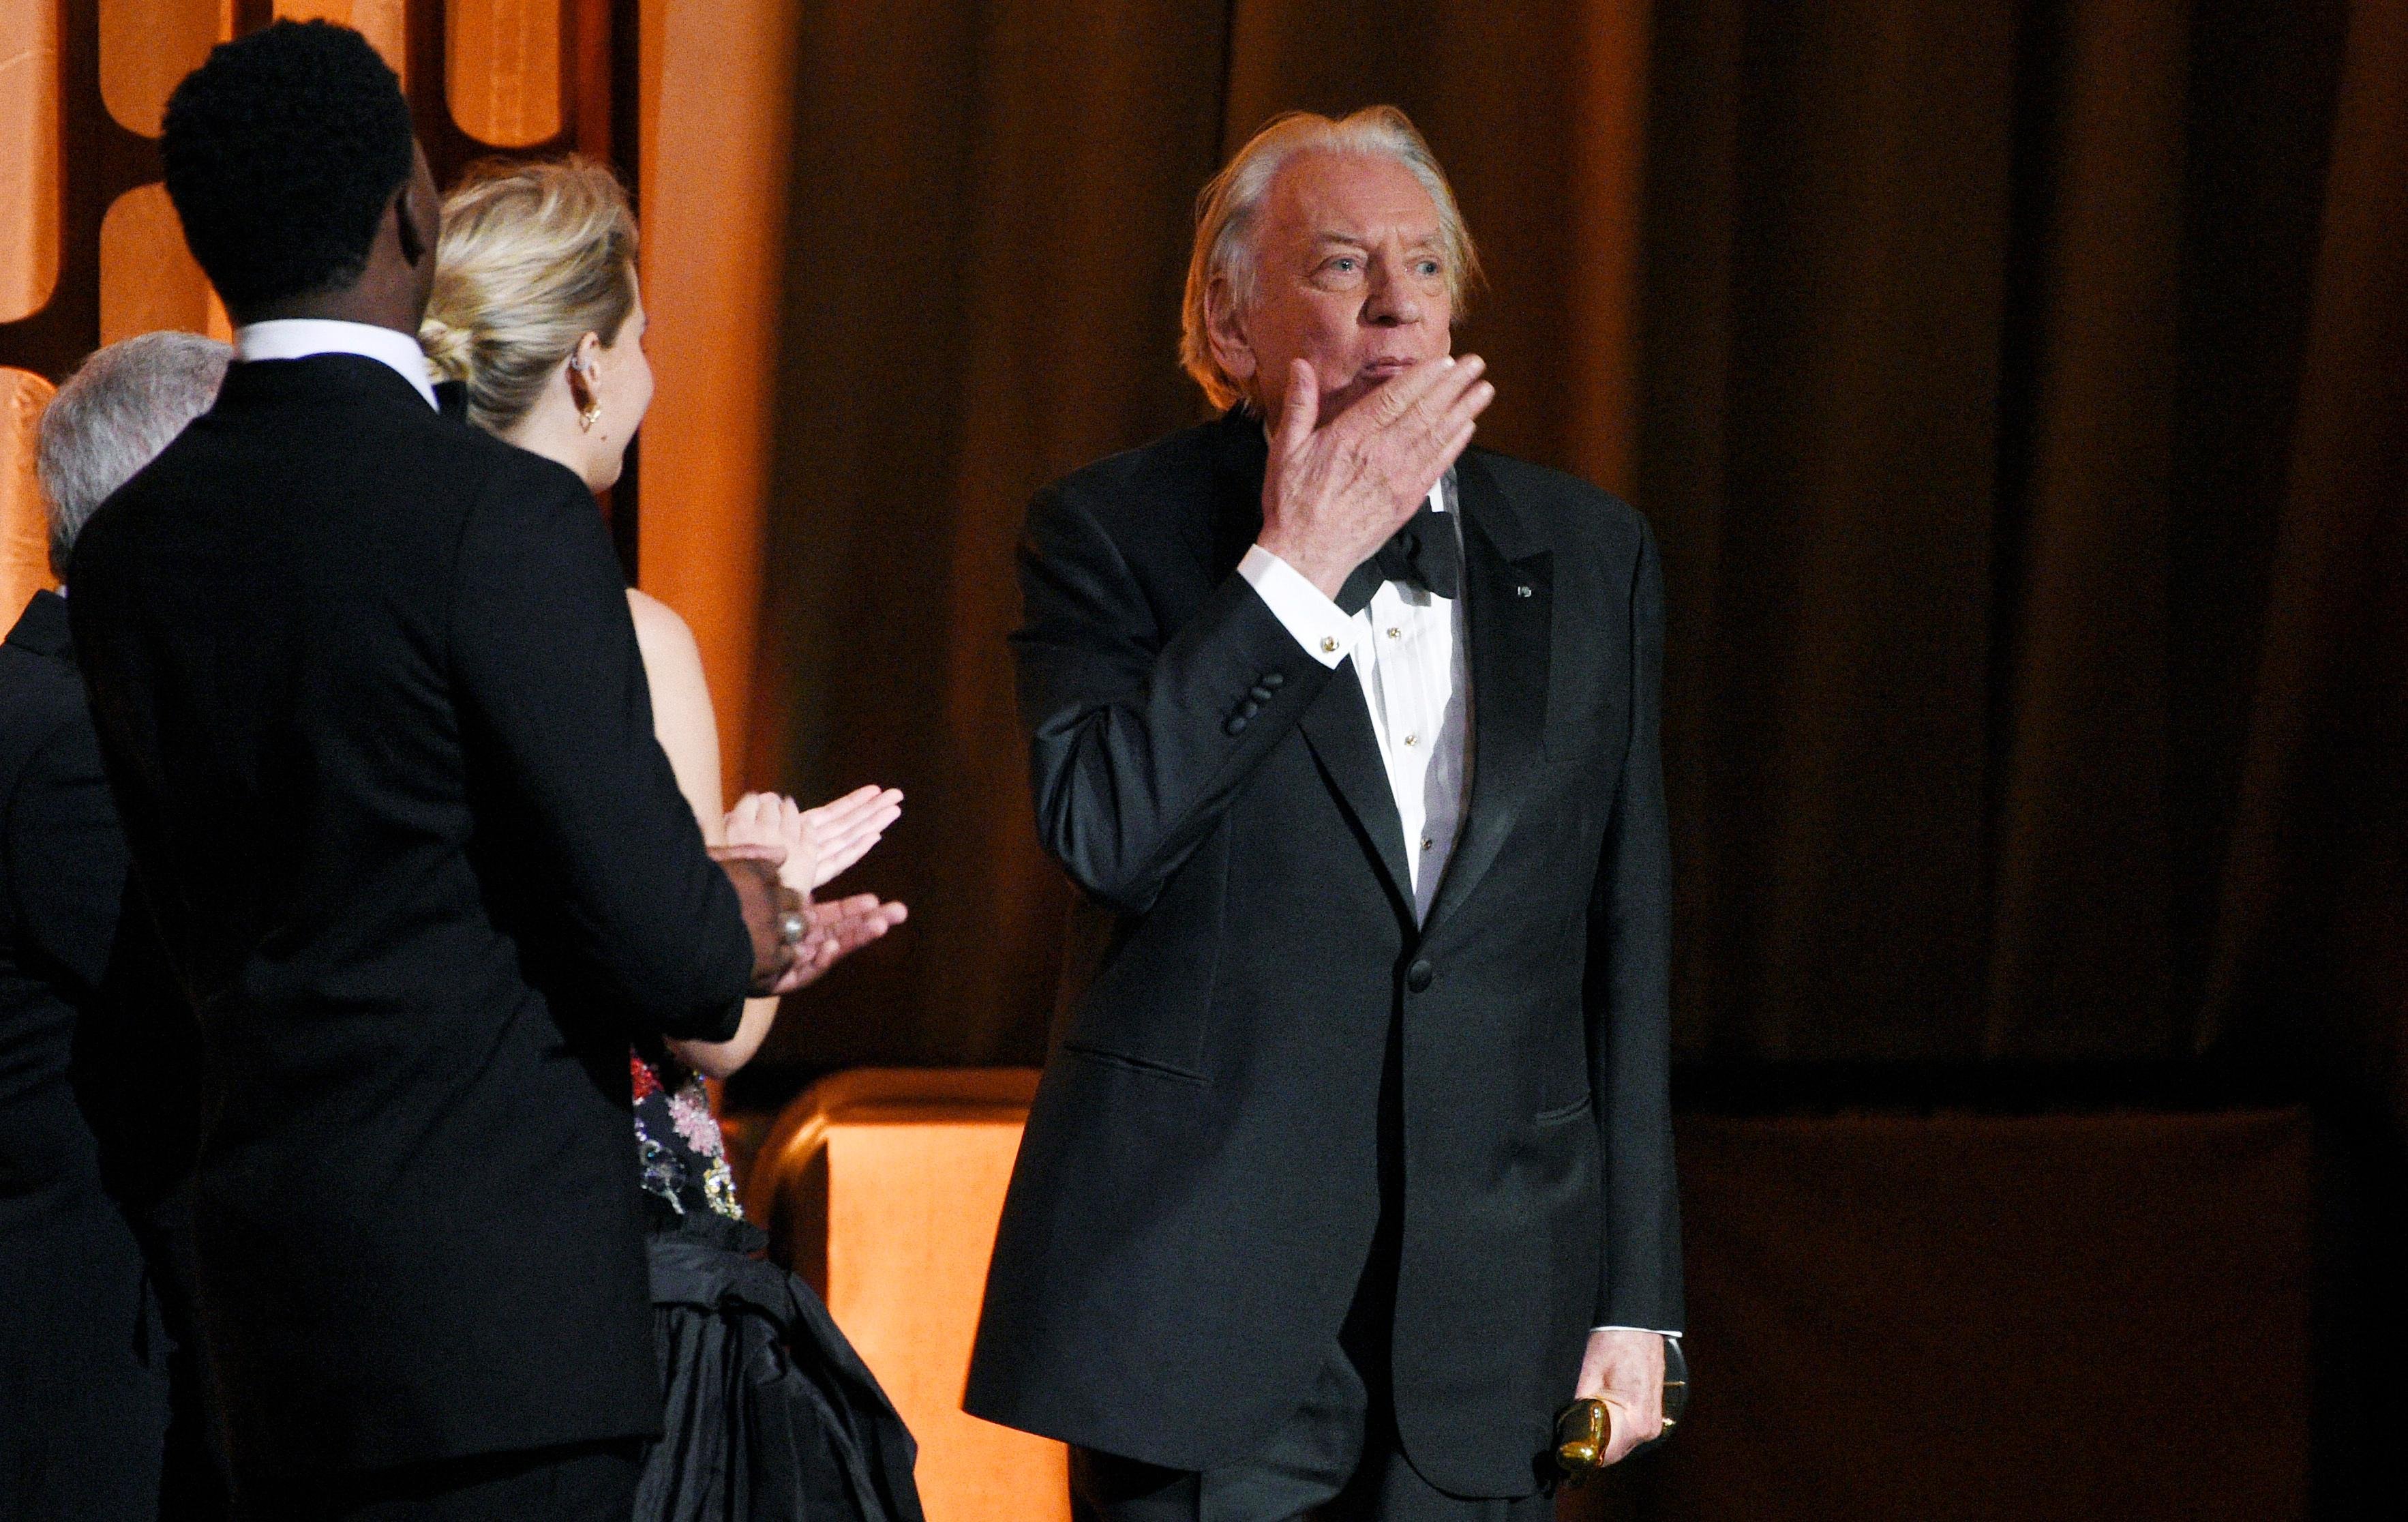 Actor Donald Sutherland blows a kiss to the audience after receiving an honorary Oscar at the 2017 Governors Awards at The Ray Dolby Ballroom on Saturday, Nov. 11, 2017, in Los Angeles. (Photo by Chris Pizzello/Invision/AP)